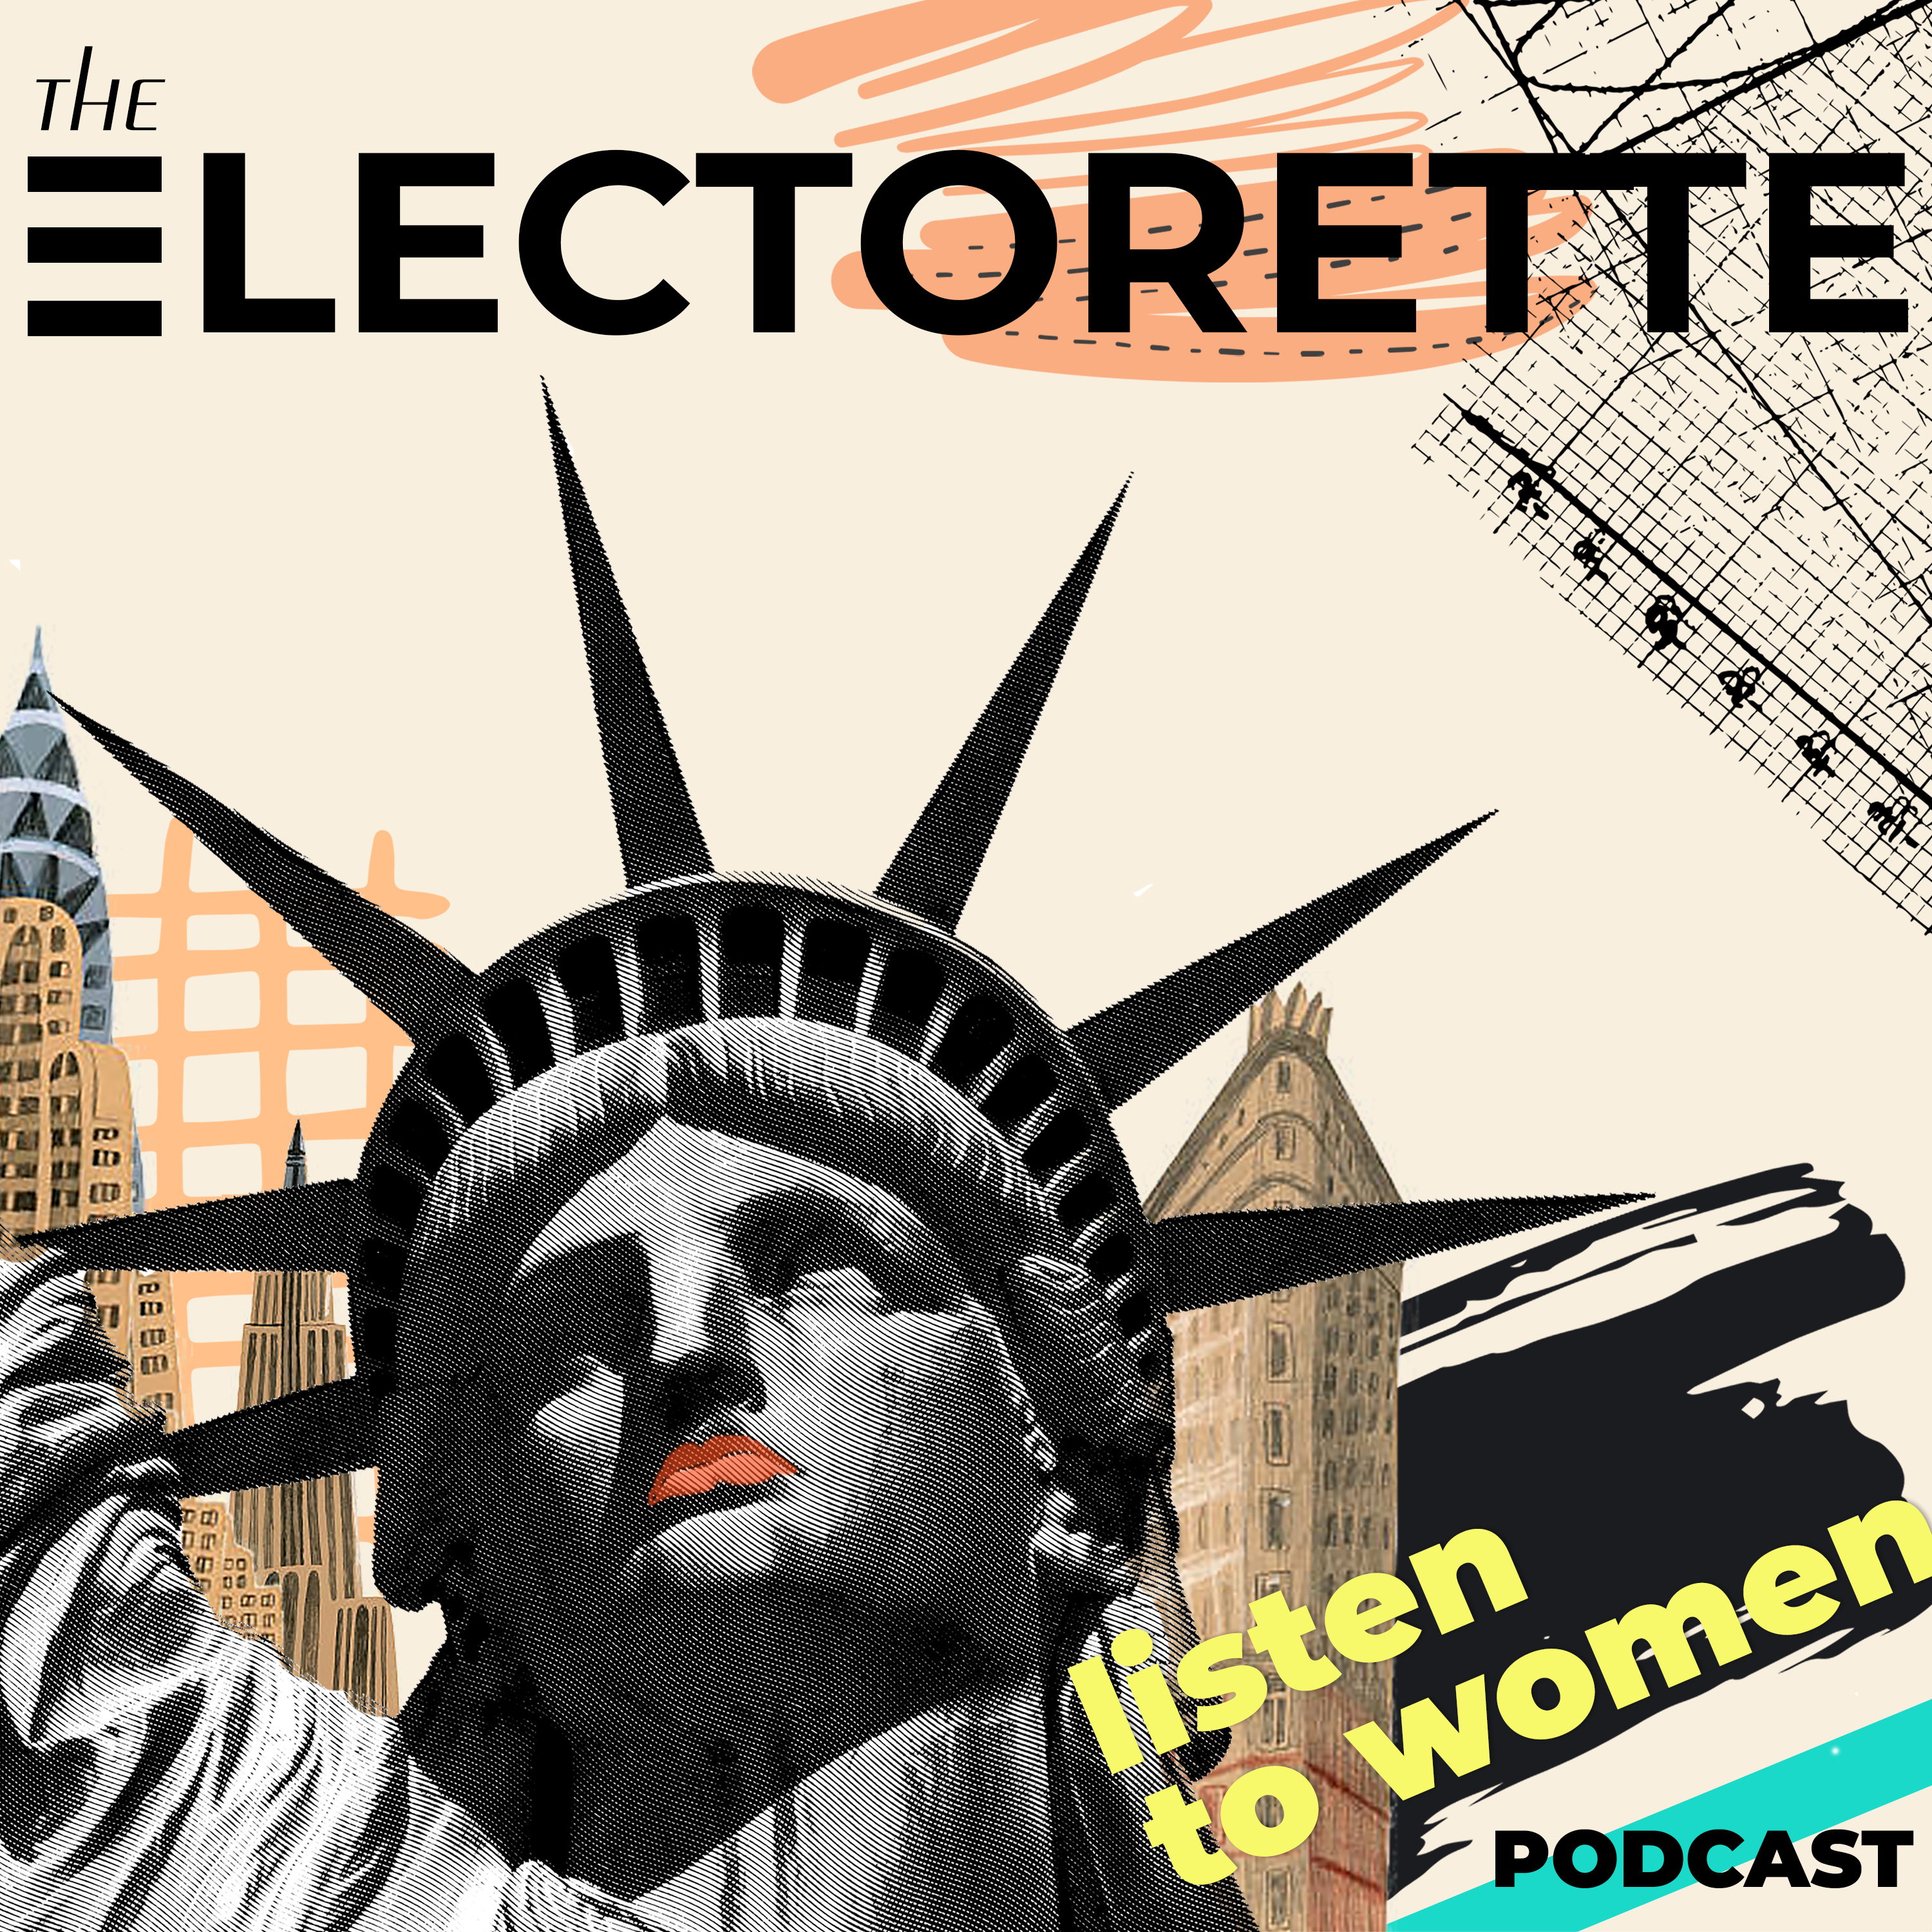 The Electorette Podcast